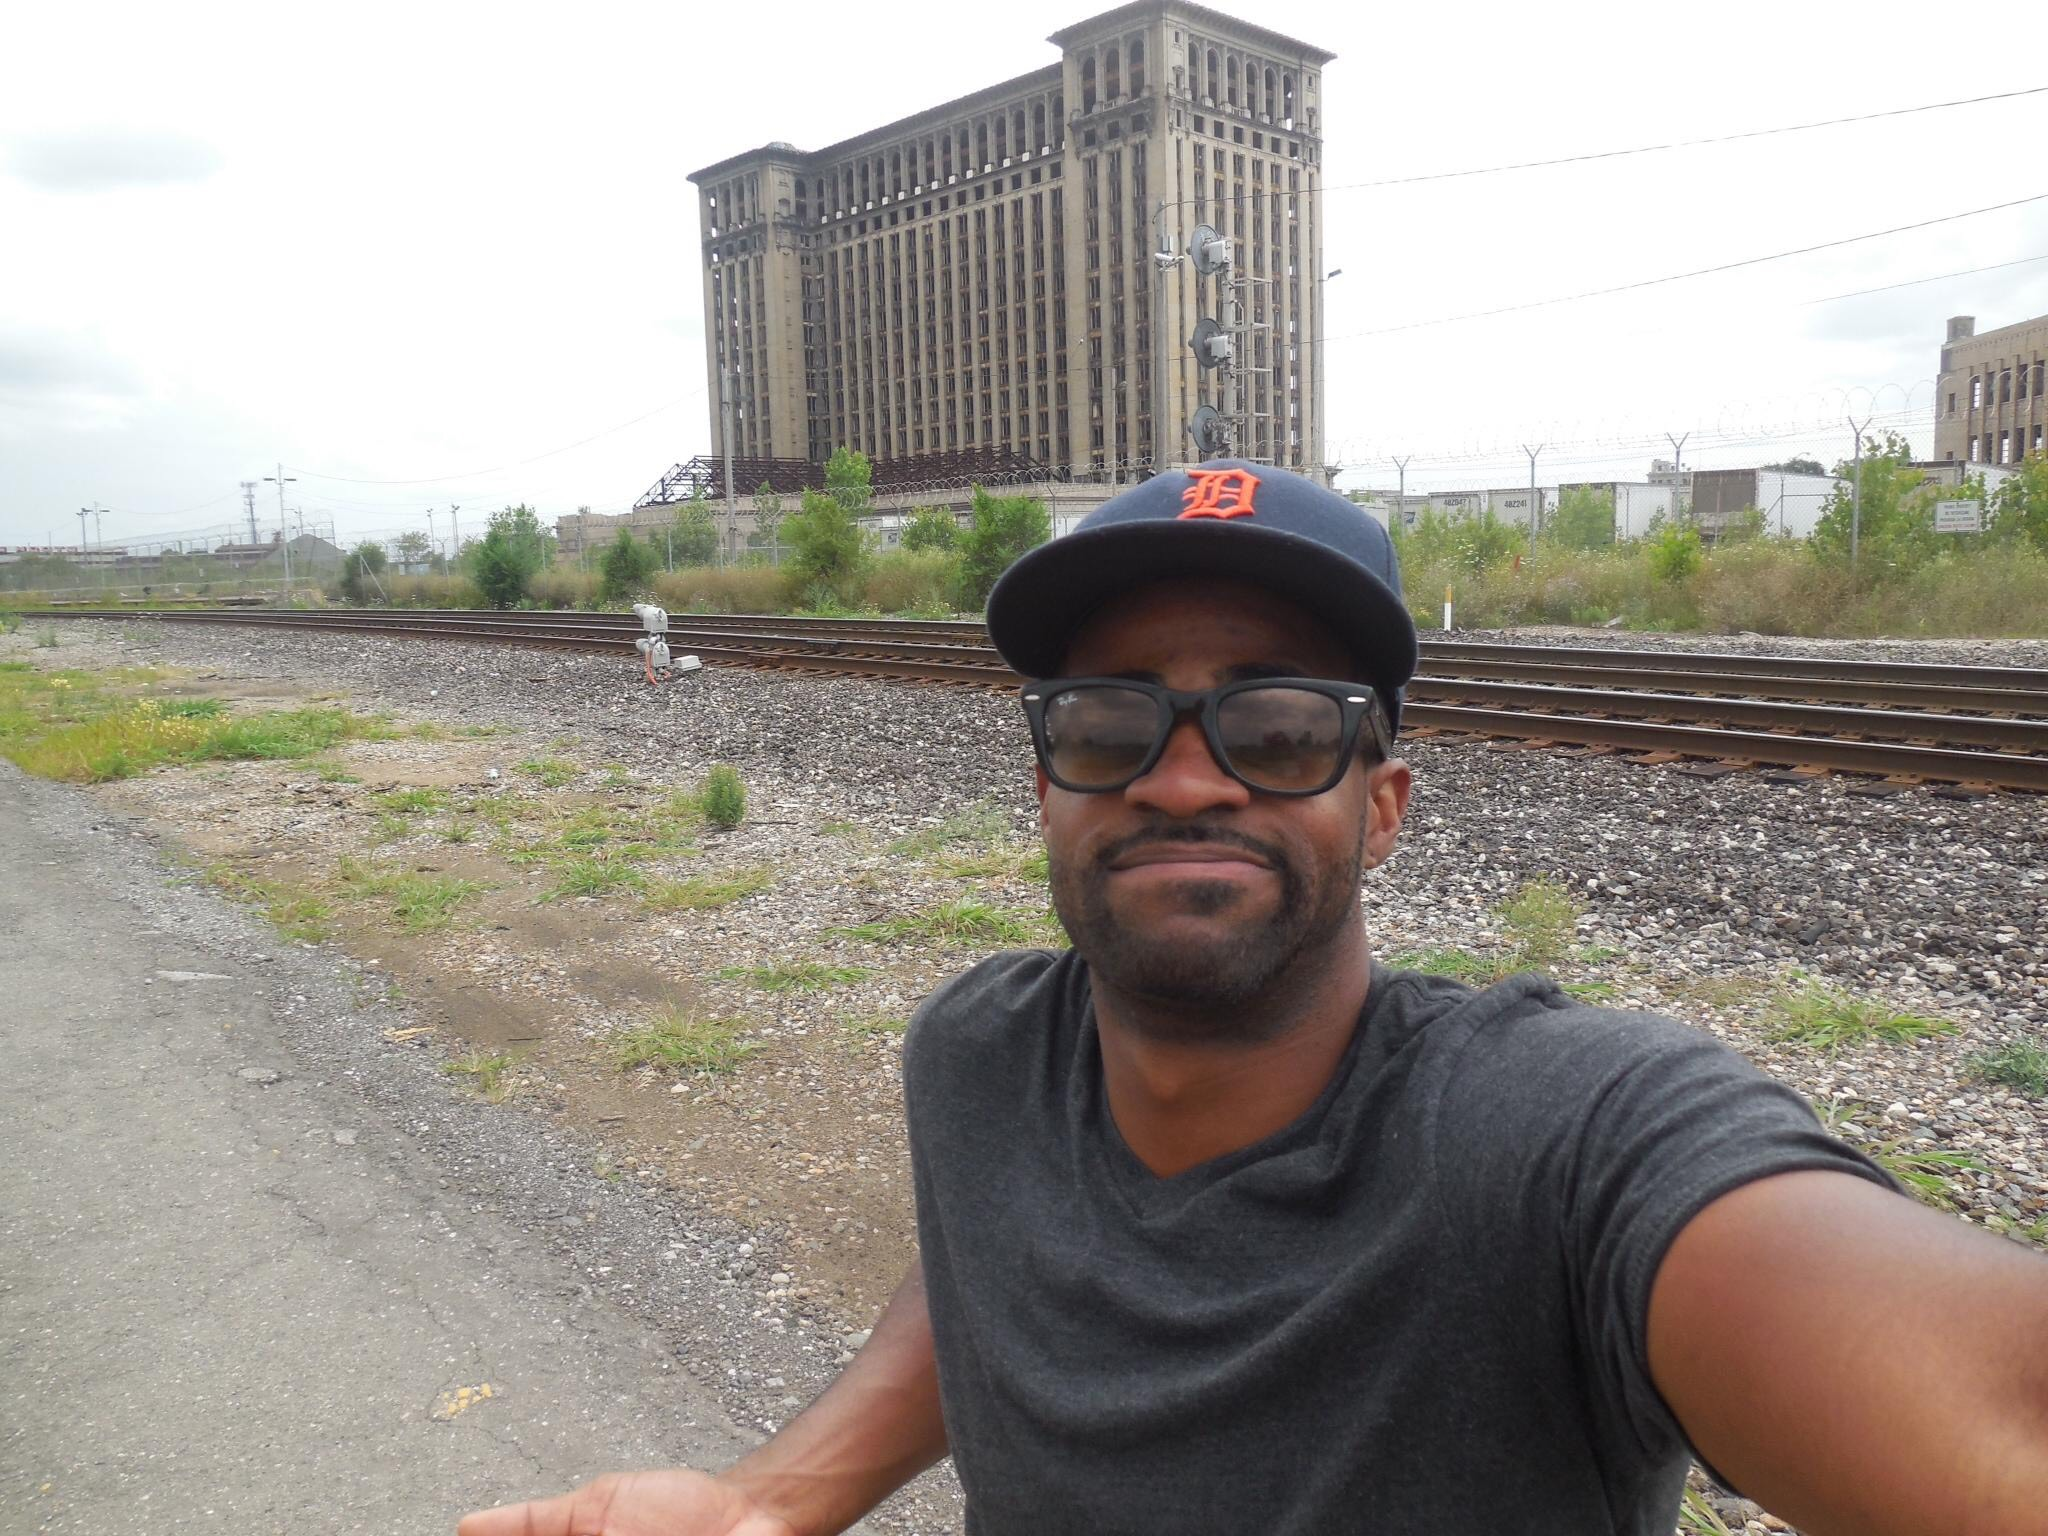 Marques exploring the Michigan Train Depot in Corktown